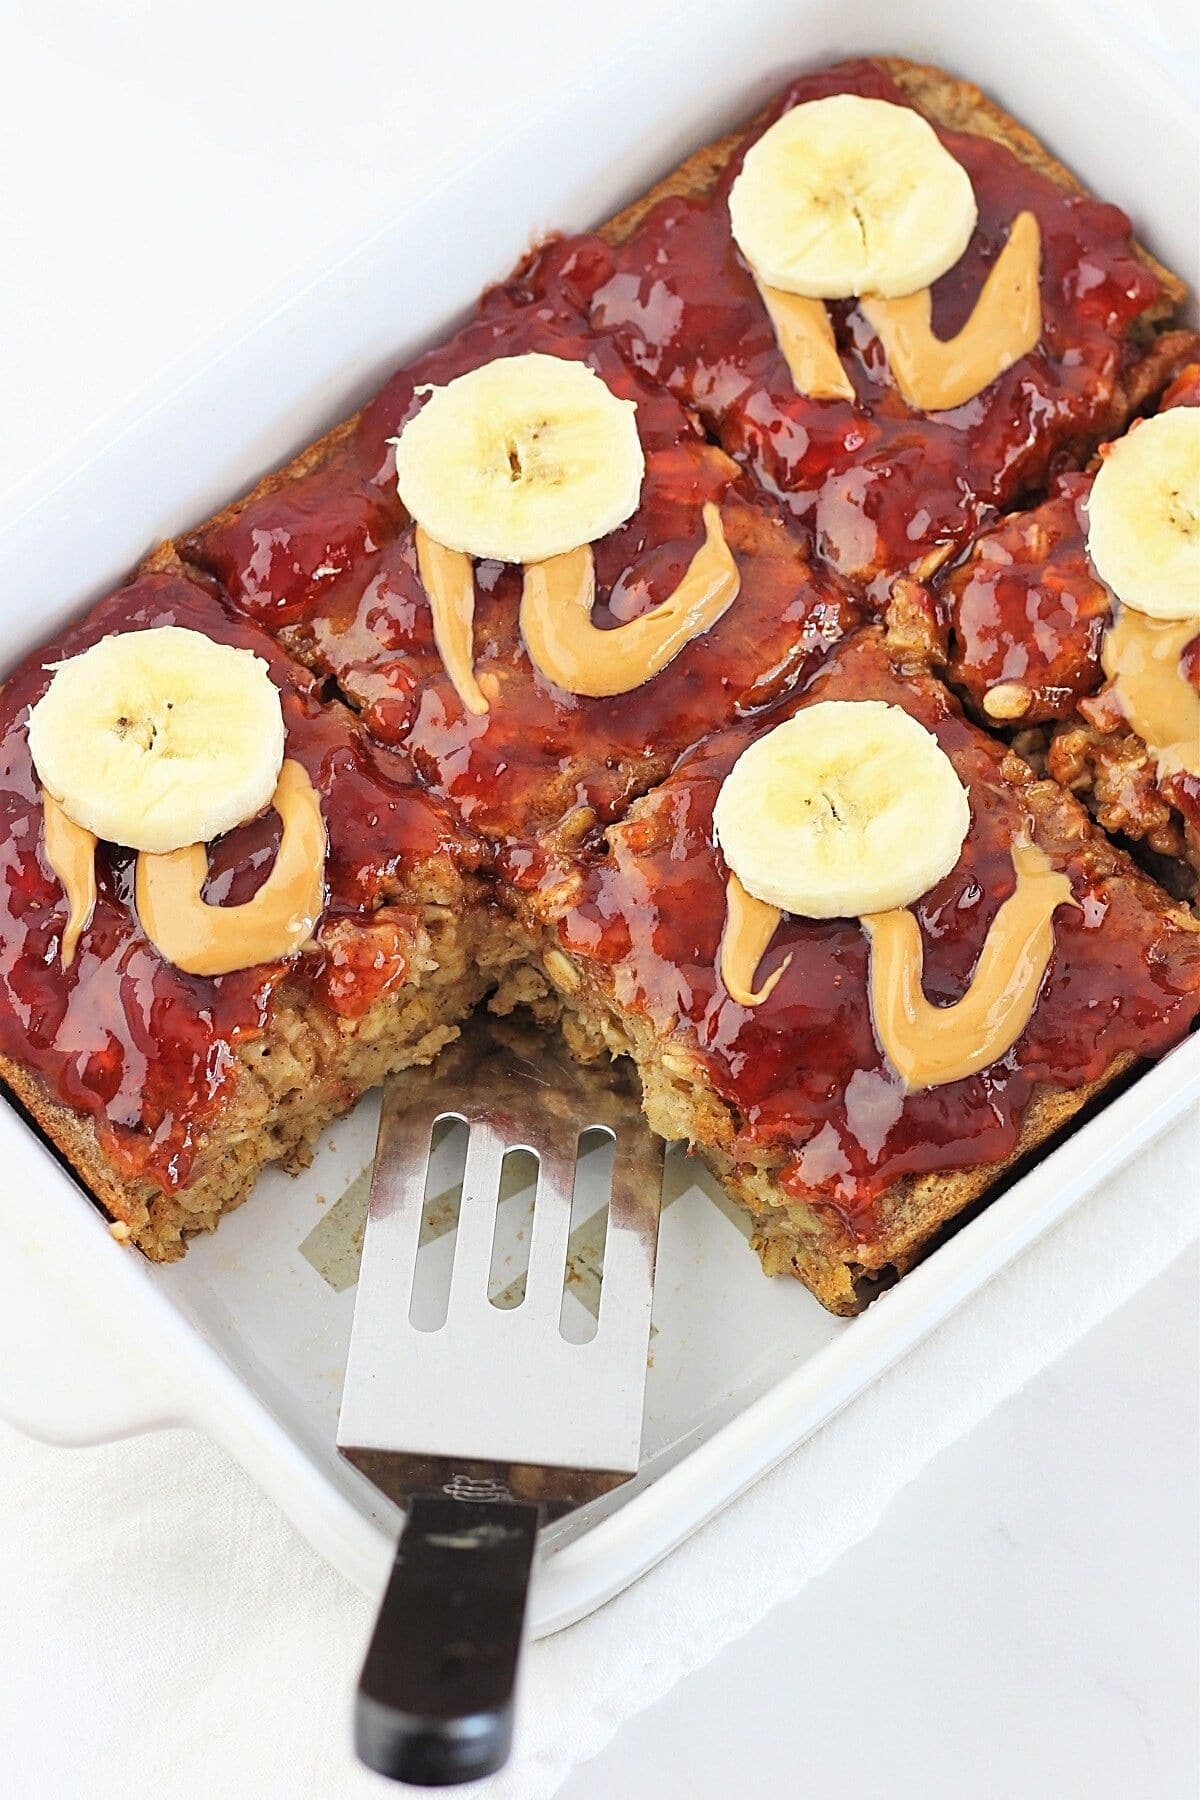 peanut butter, banana and jam baked oatmeal in a baking dish with a spatula